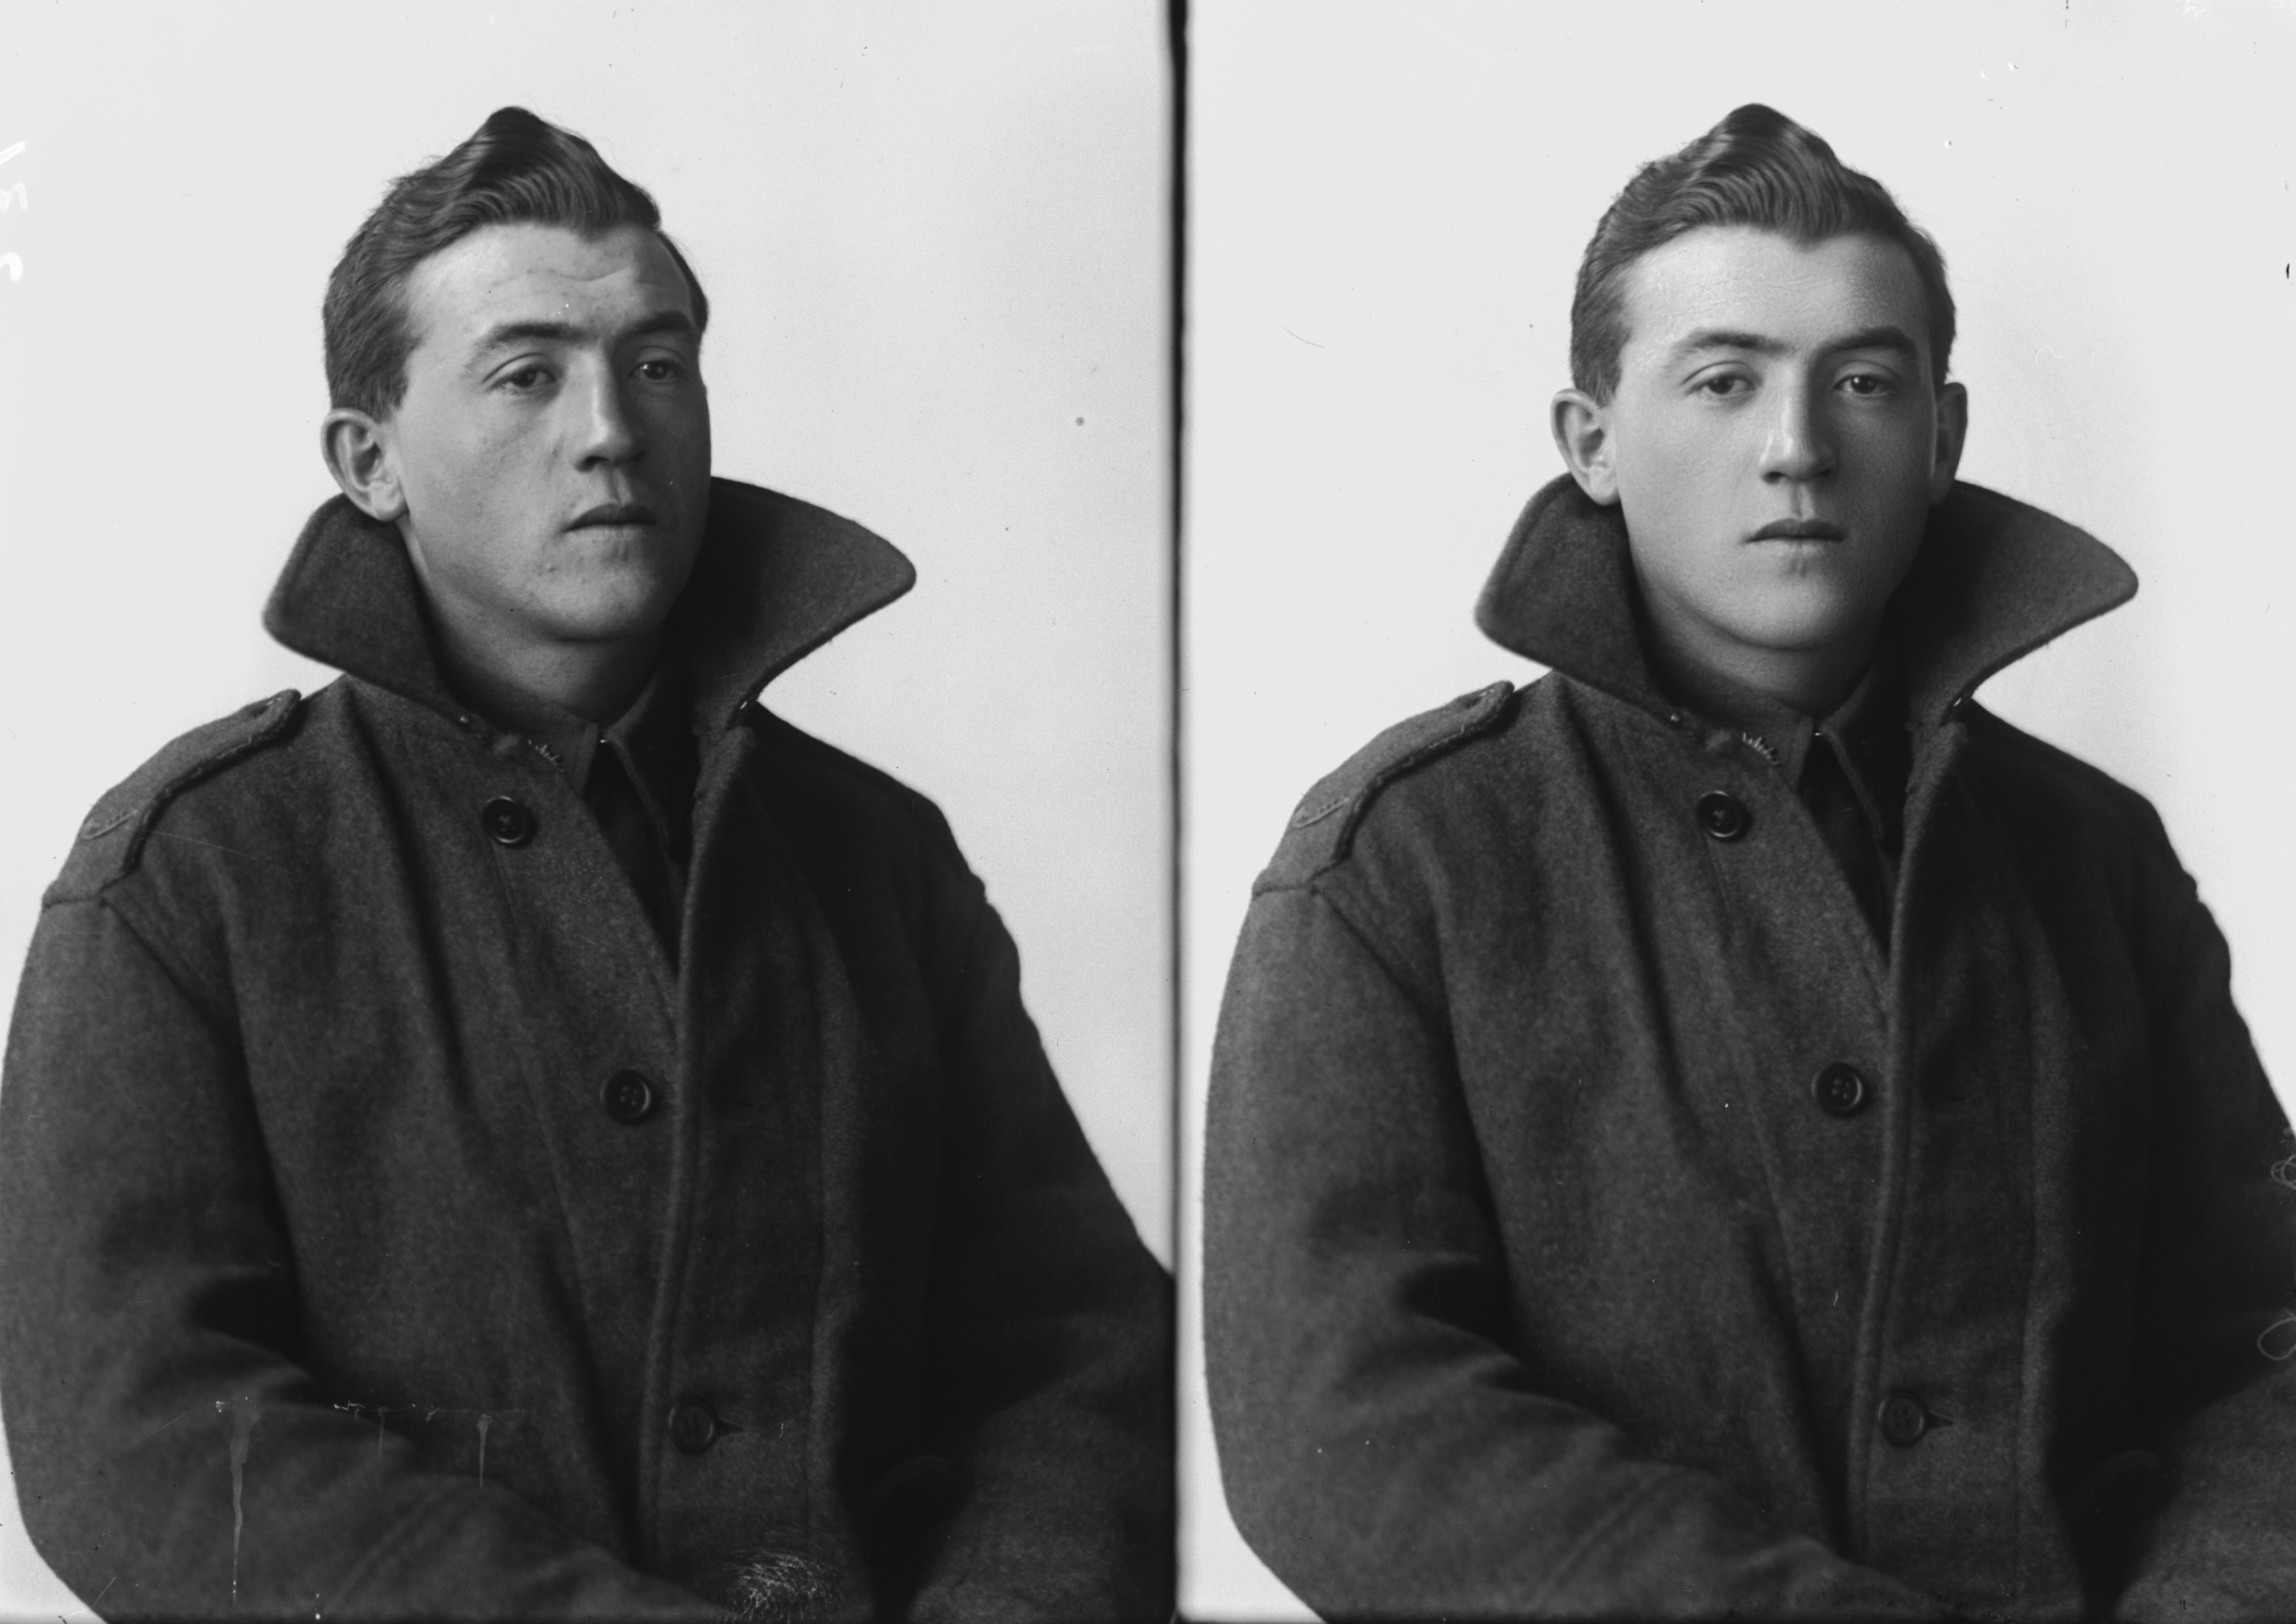 Photographed at the Dease Studio, 117 Barrack Street Perth WA Image courtesy of the State Library of Western Australia: 108354PD